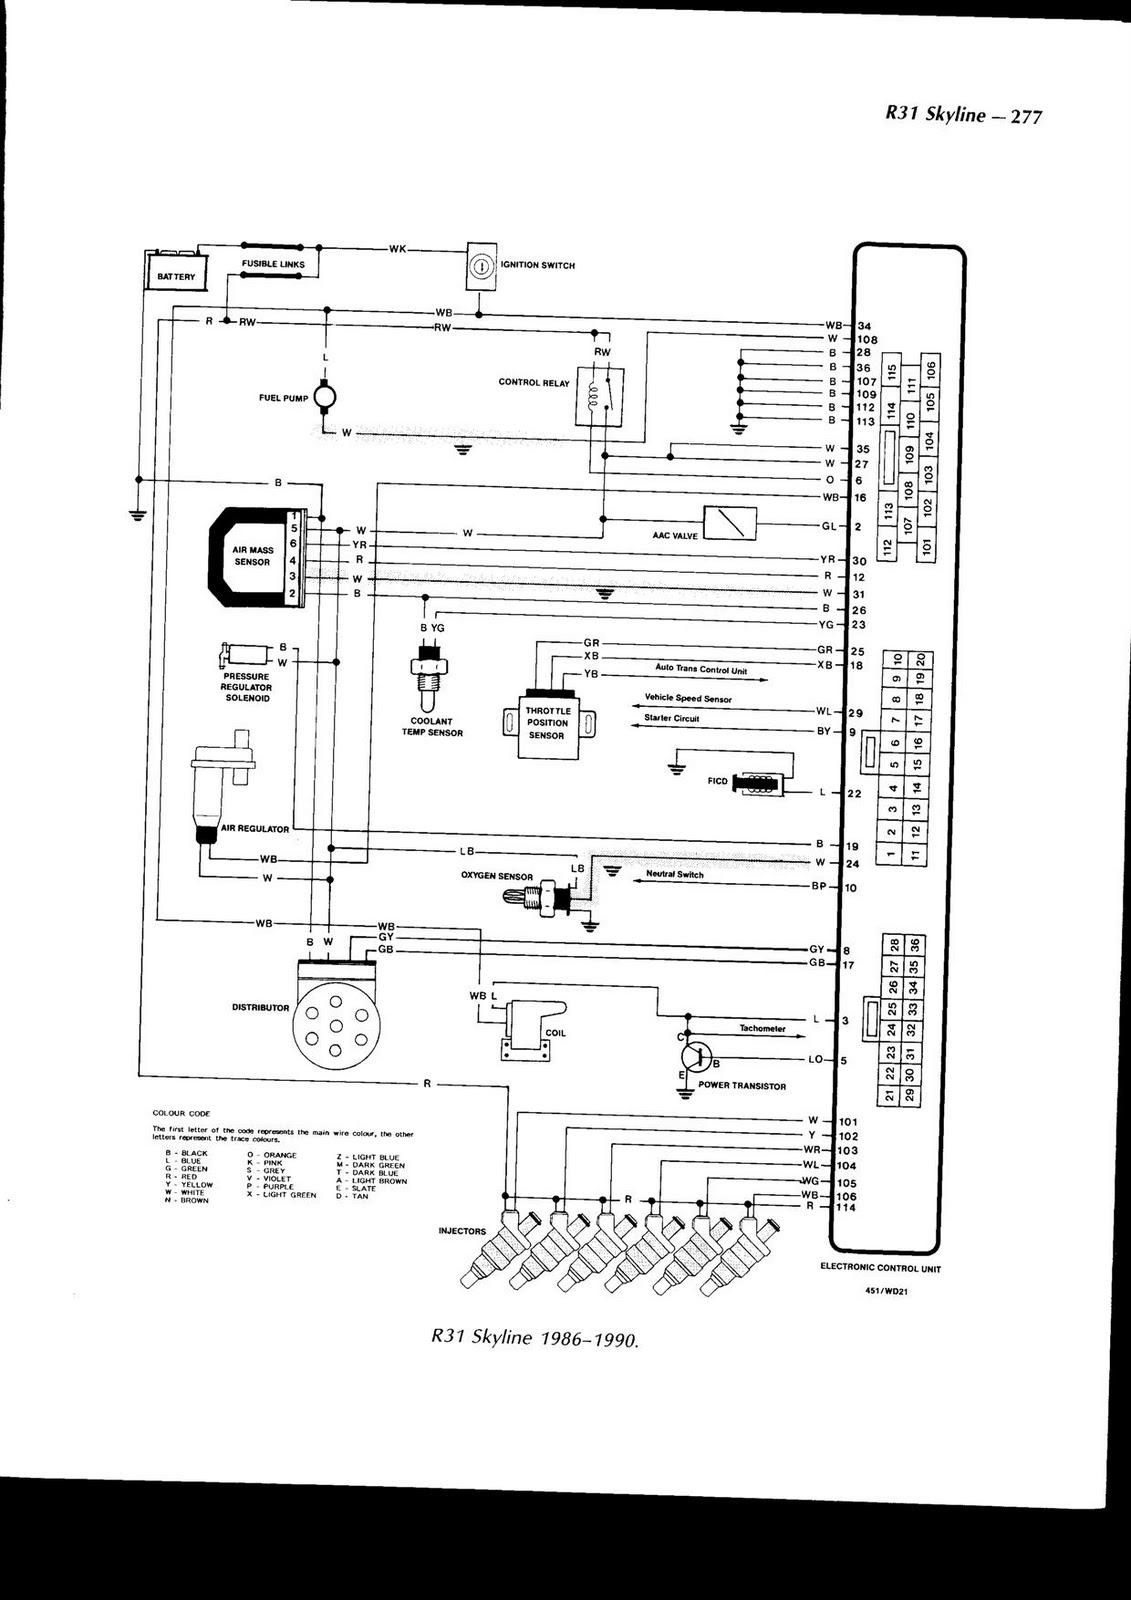 RB30_R31_Wiring_Diagram rb30 wiring diagrams 280zx project vl commodore ecu wiring diagram at virtualis.co